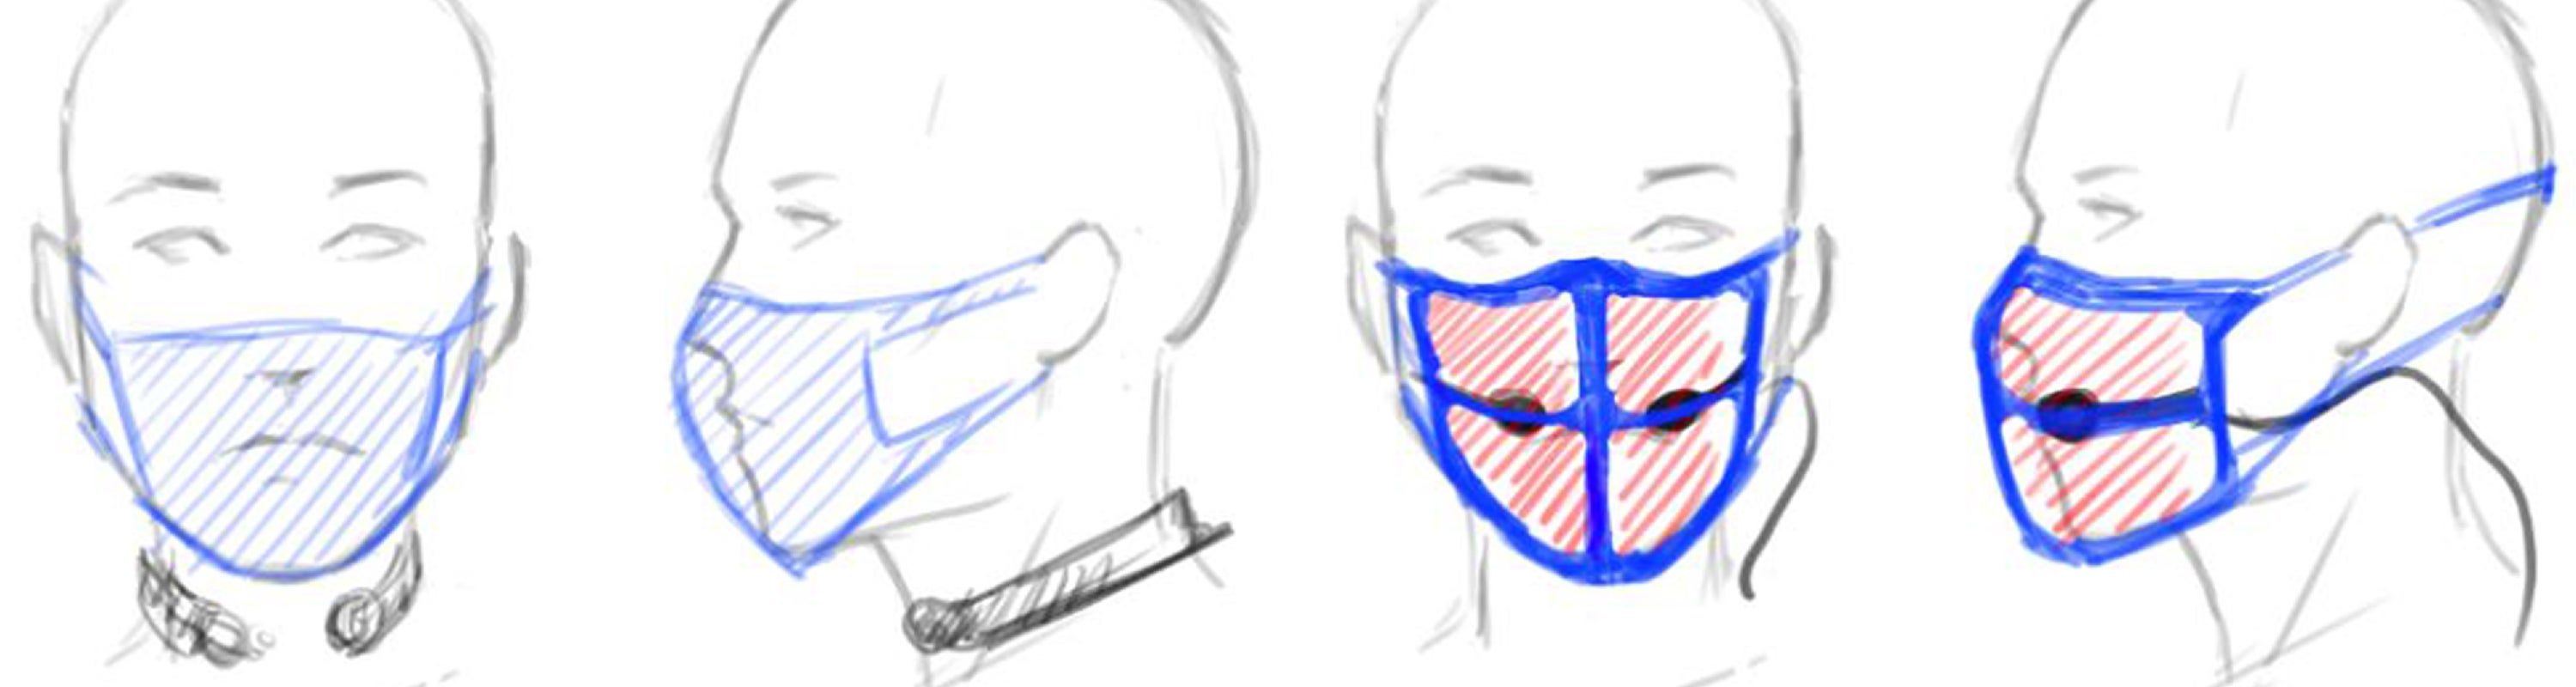 masks and microphones sketches